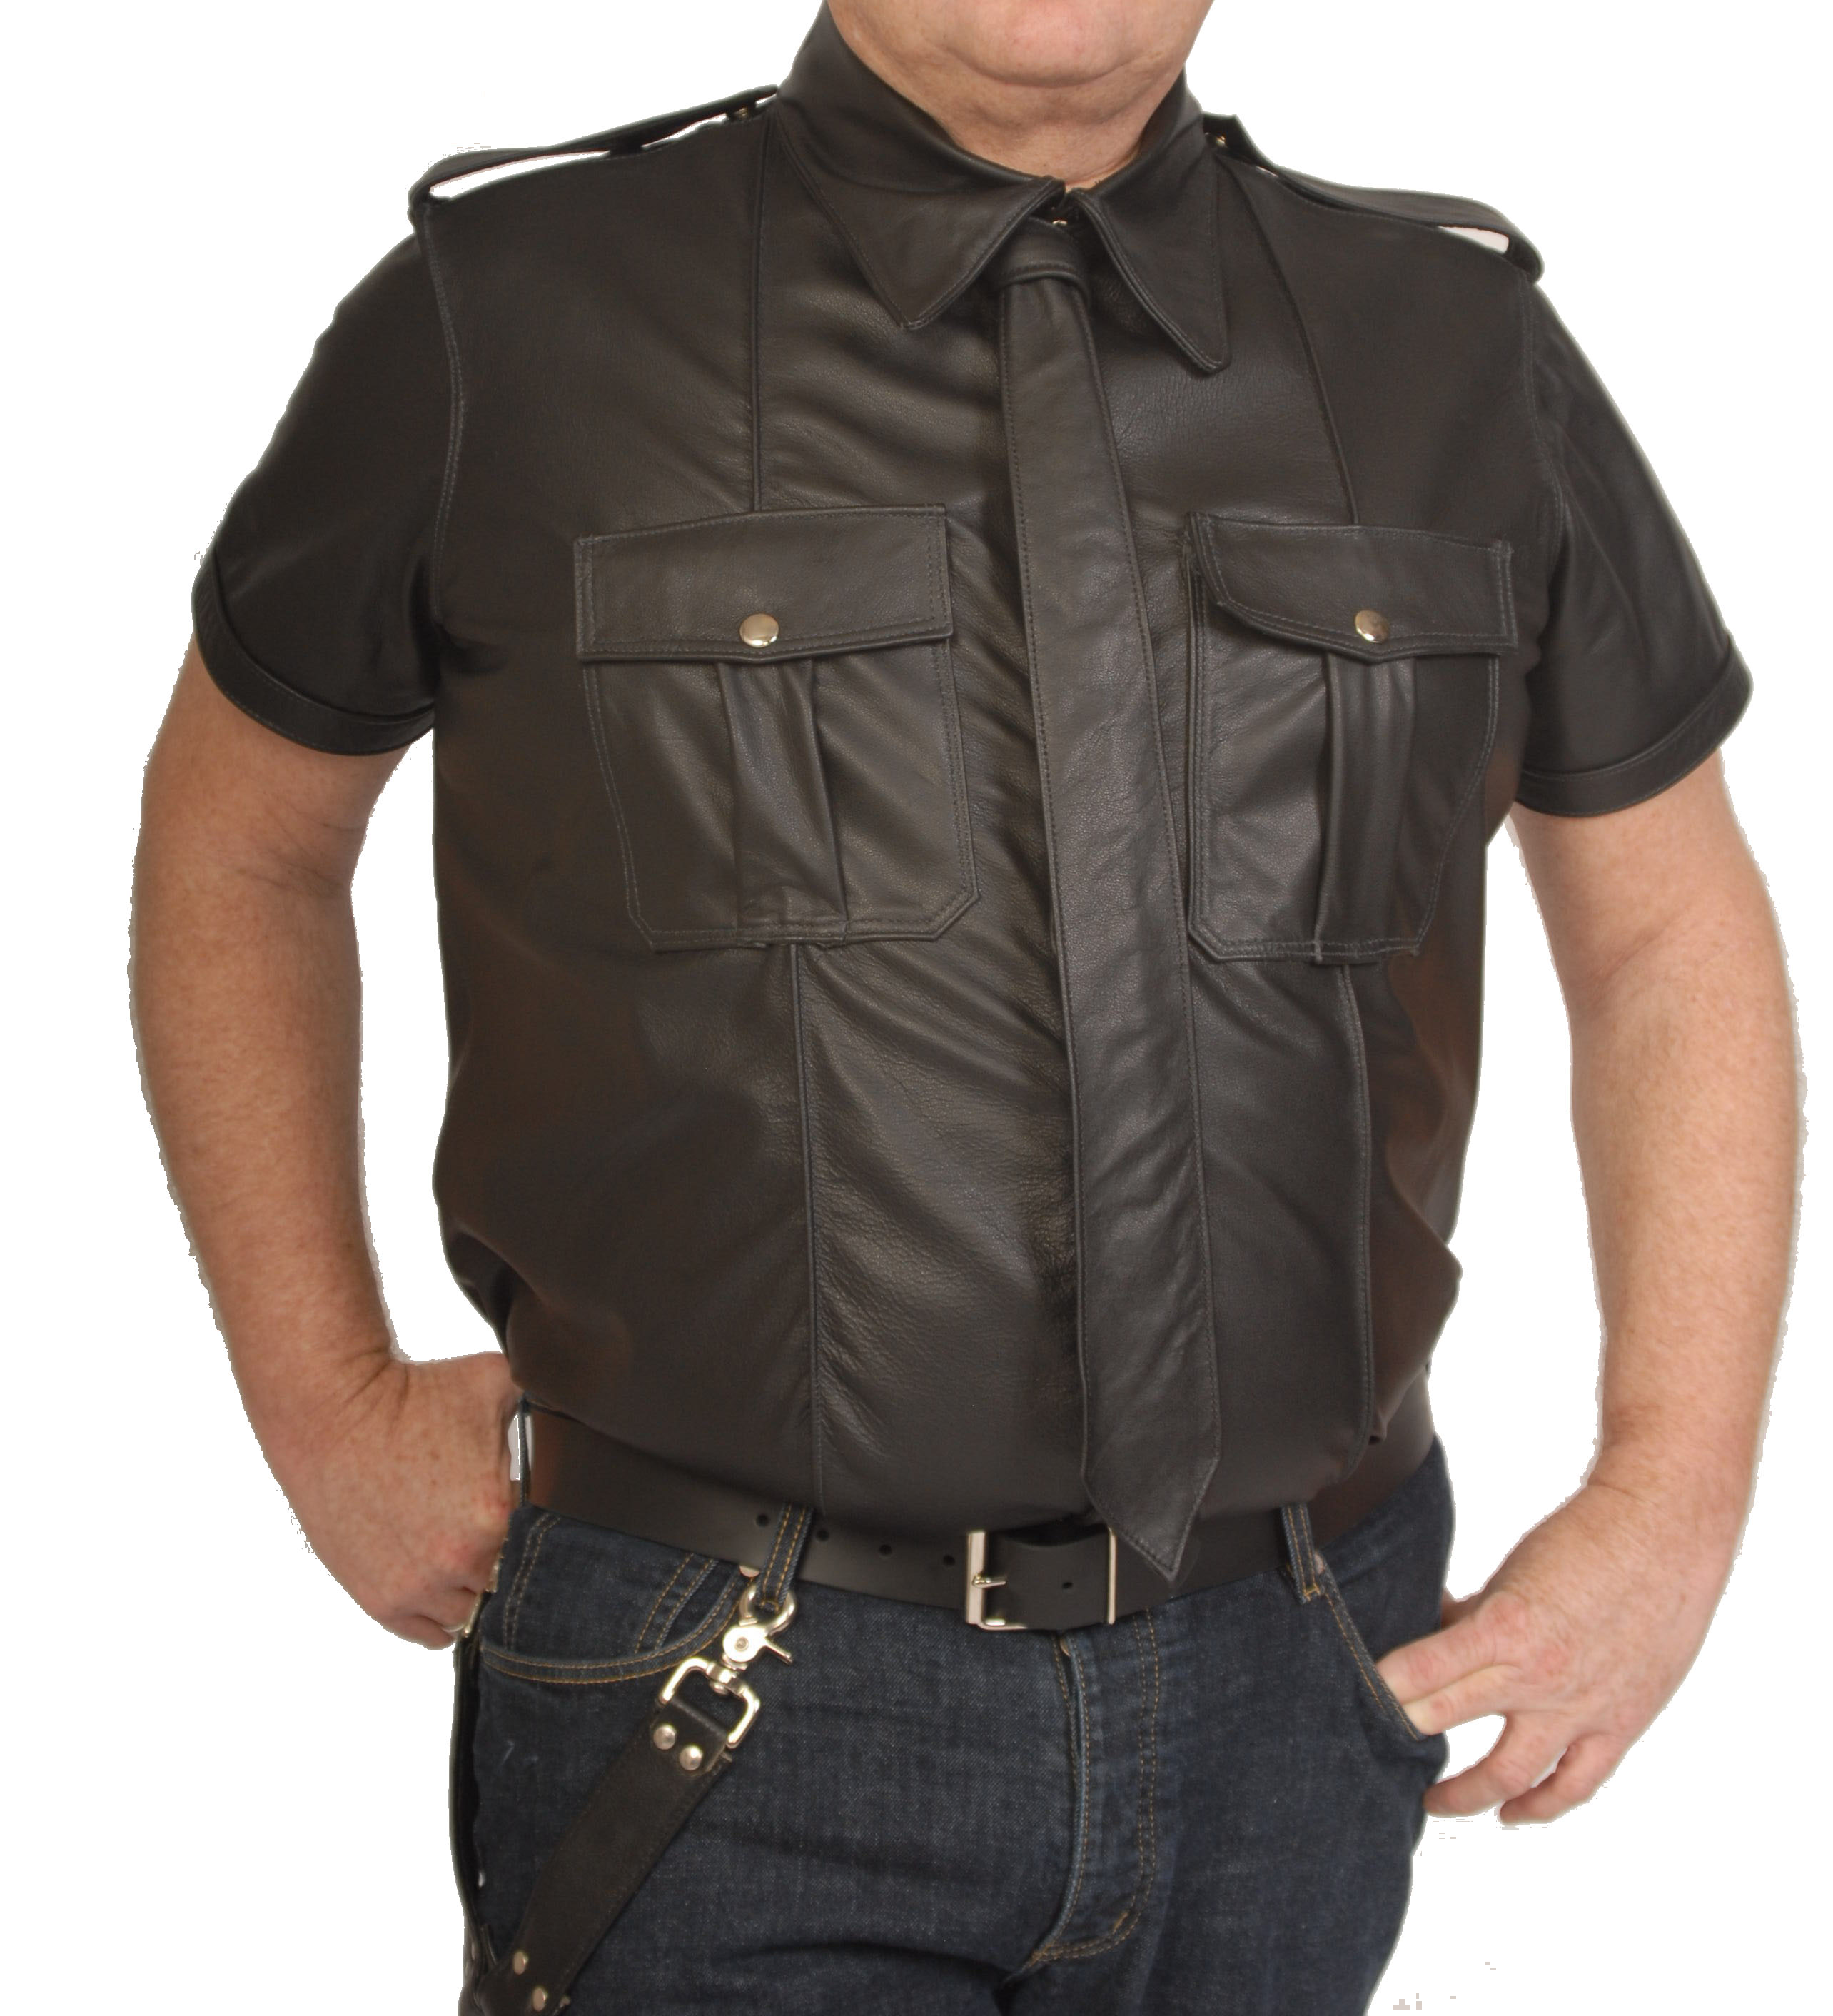 Leather Police Style Uniform Shirt Custom Made By Leather